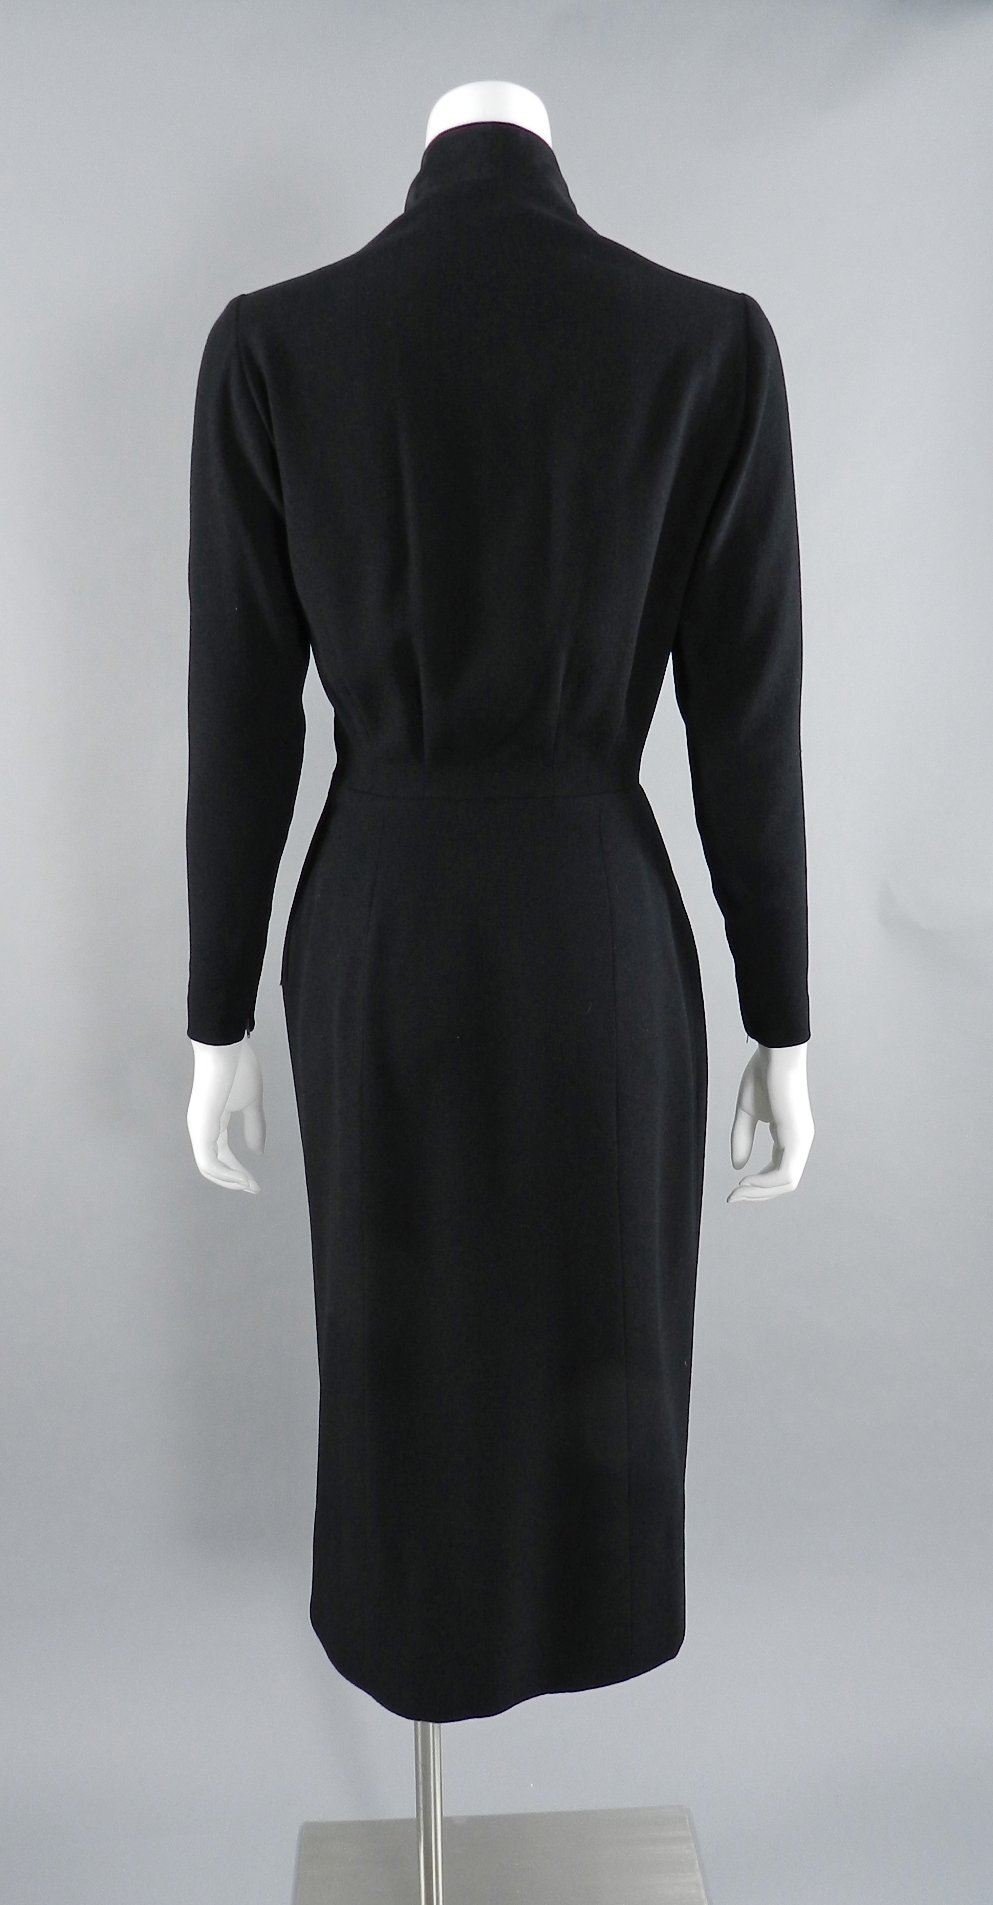 c9eb9c04d20 Pierre Balmain 1950 s Haute Couture Black Wool Dress